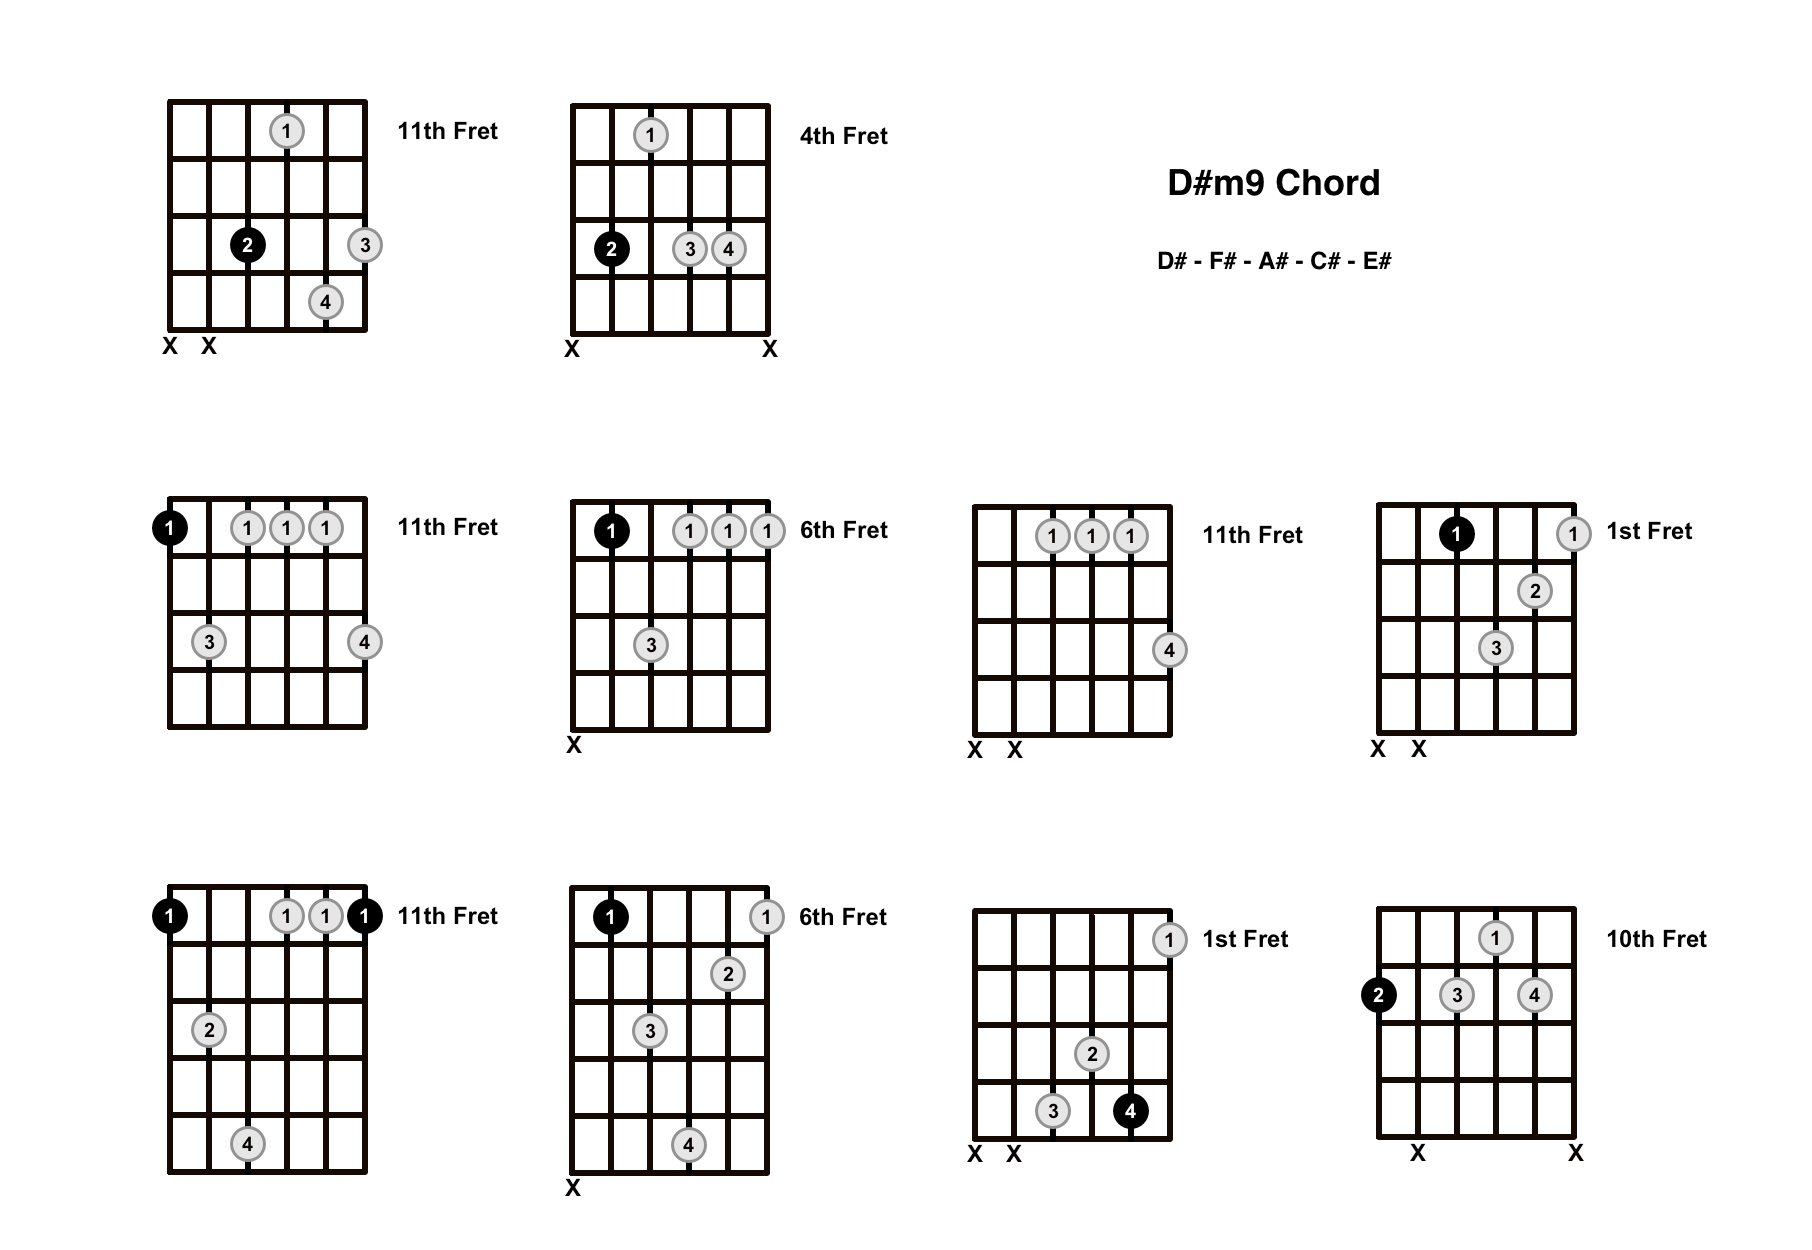 D#m9 Chord On The Guitar (D Sharp Minor 9) – Diagrams, Finger Positions and Theory